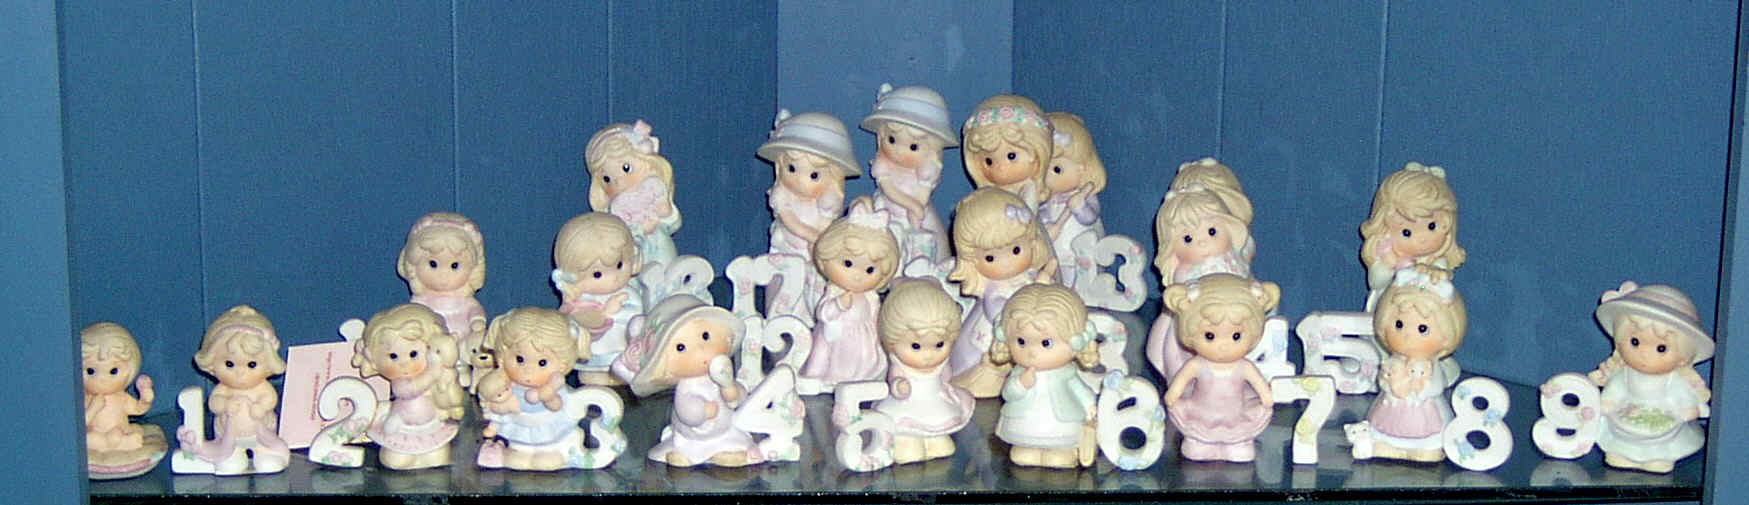 GiftsFigurines.jpg